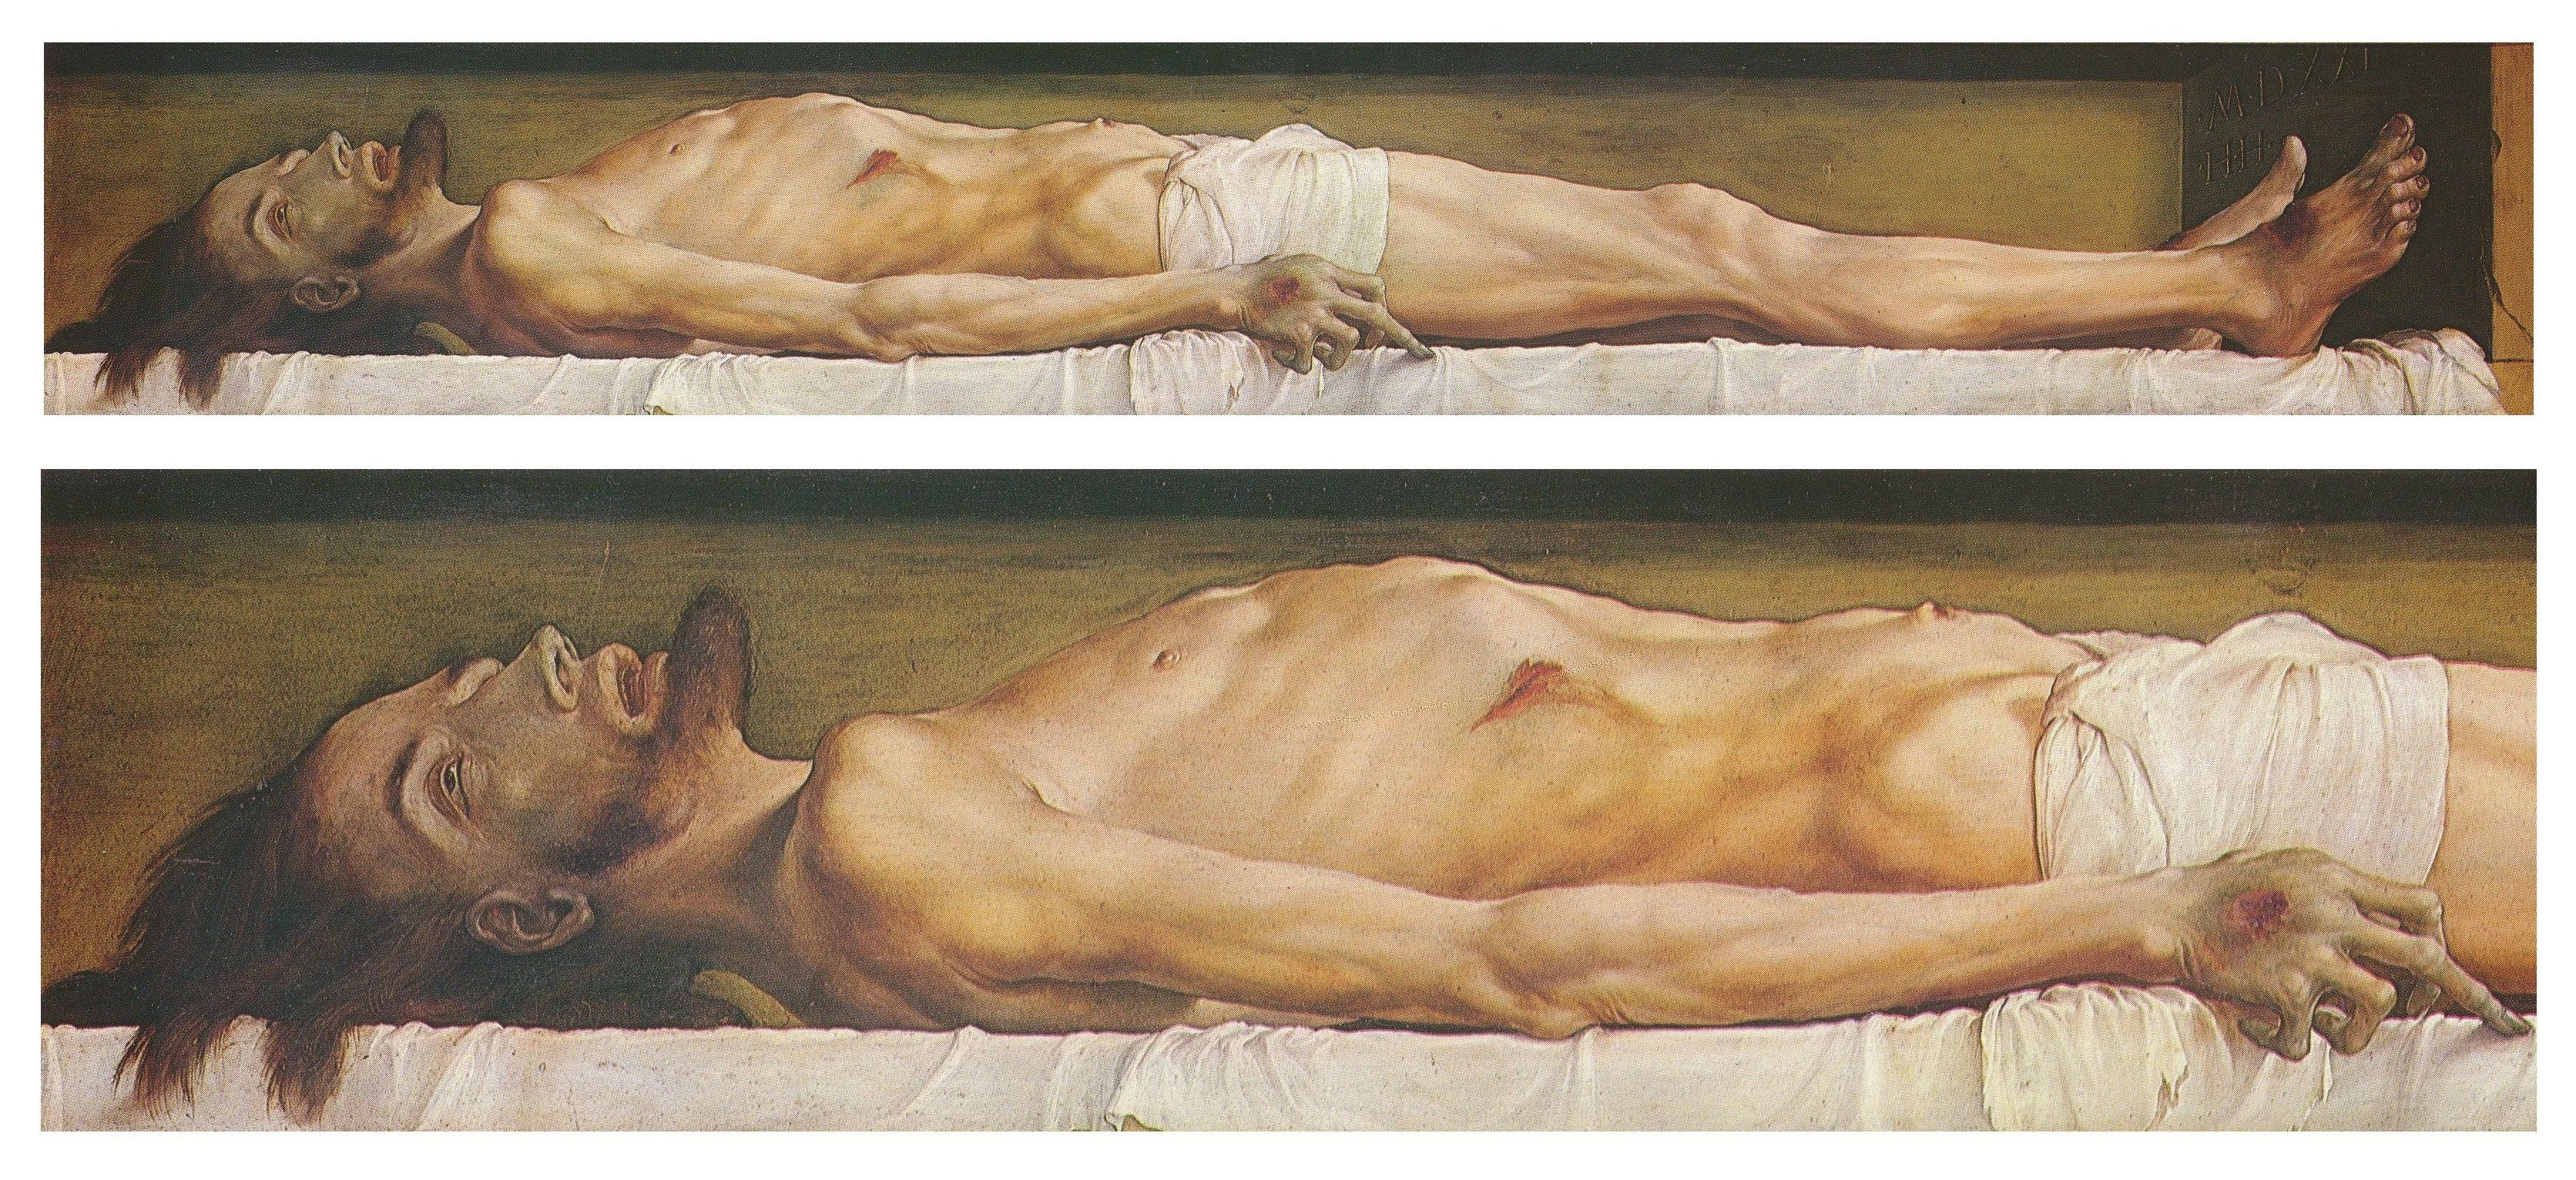 The Body of the Dead Christ in the Tomb and a detail. c.1520-22